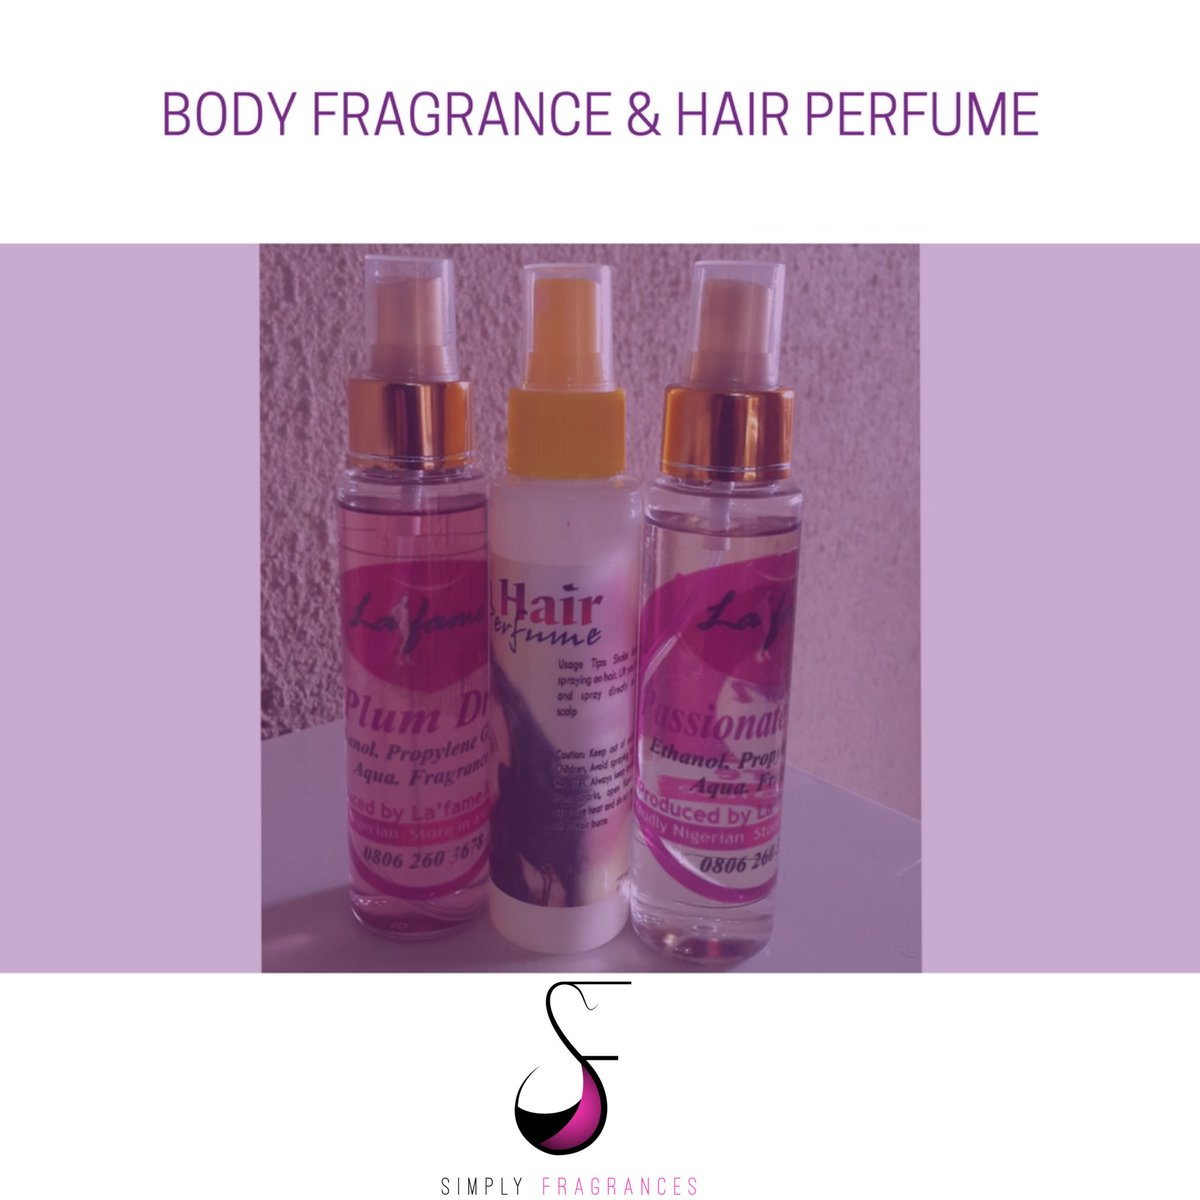 Body fragrance and hair perfume